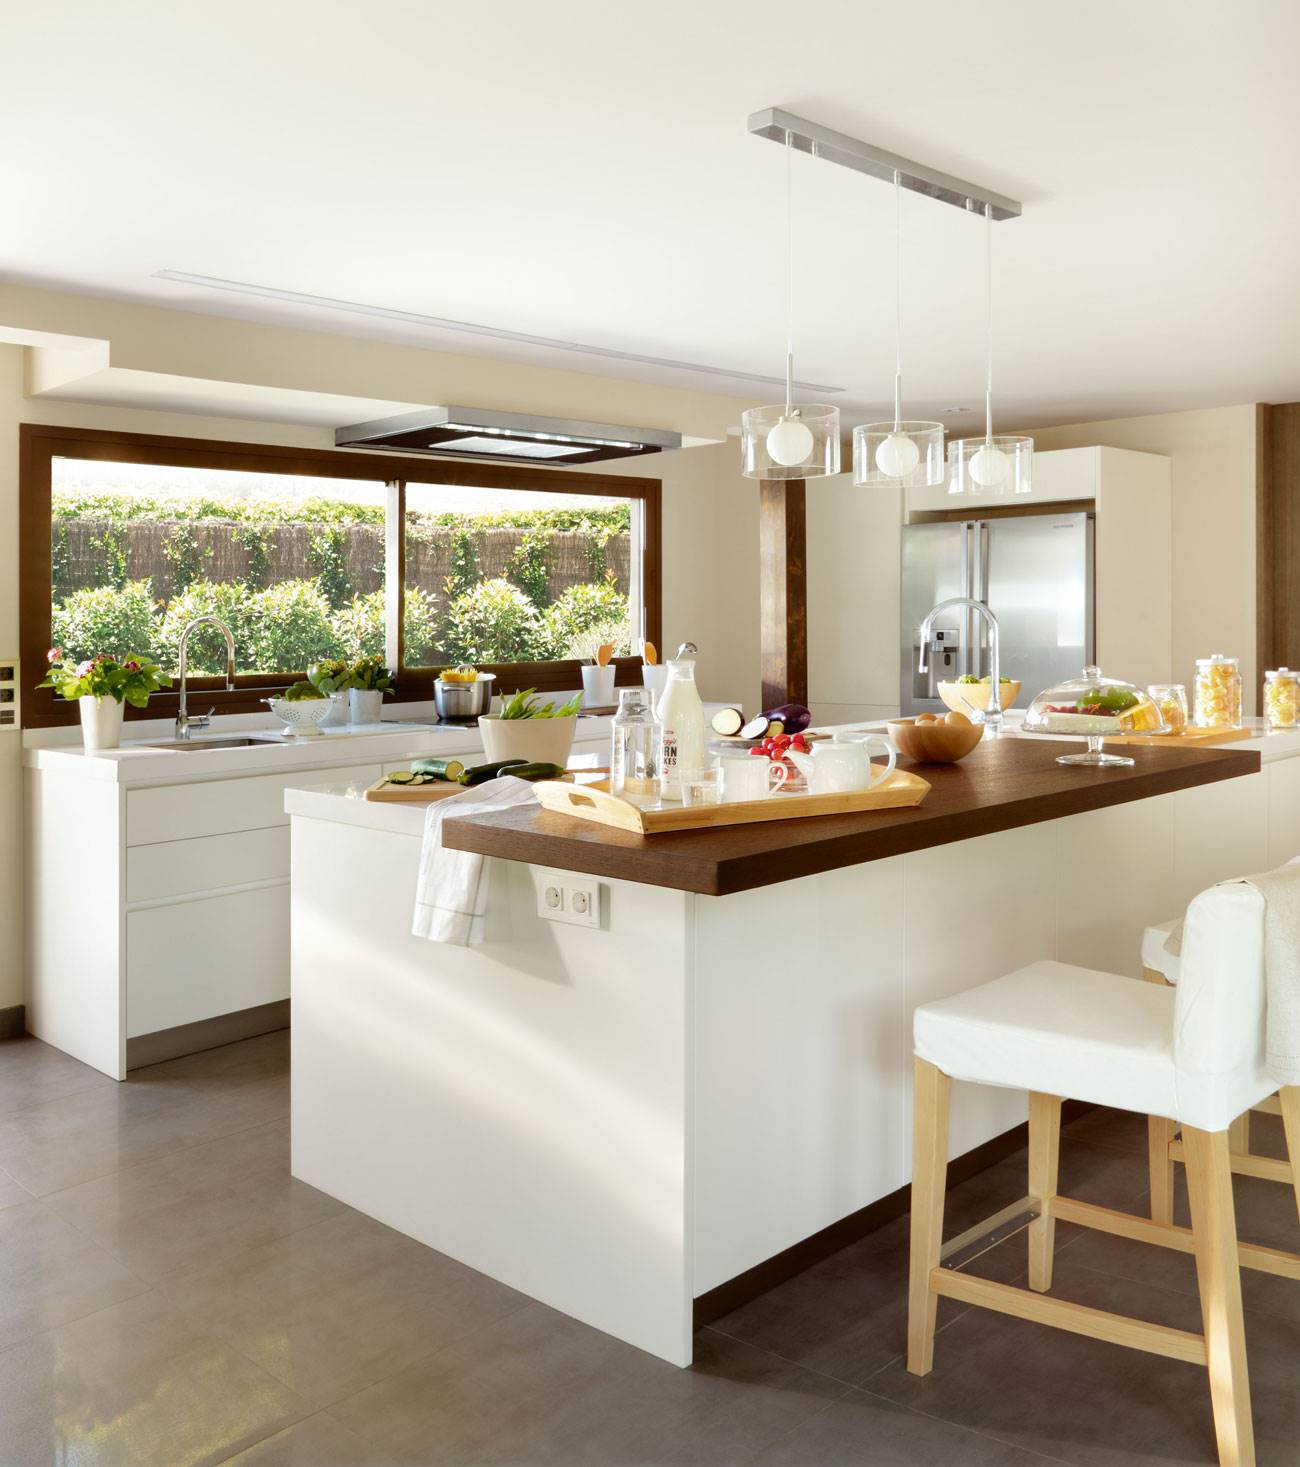 kitchen-with-island-and-bar-and-ceiling-lamps 329838. White and modern